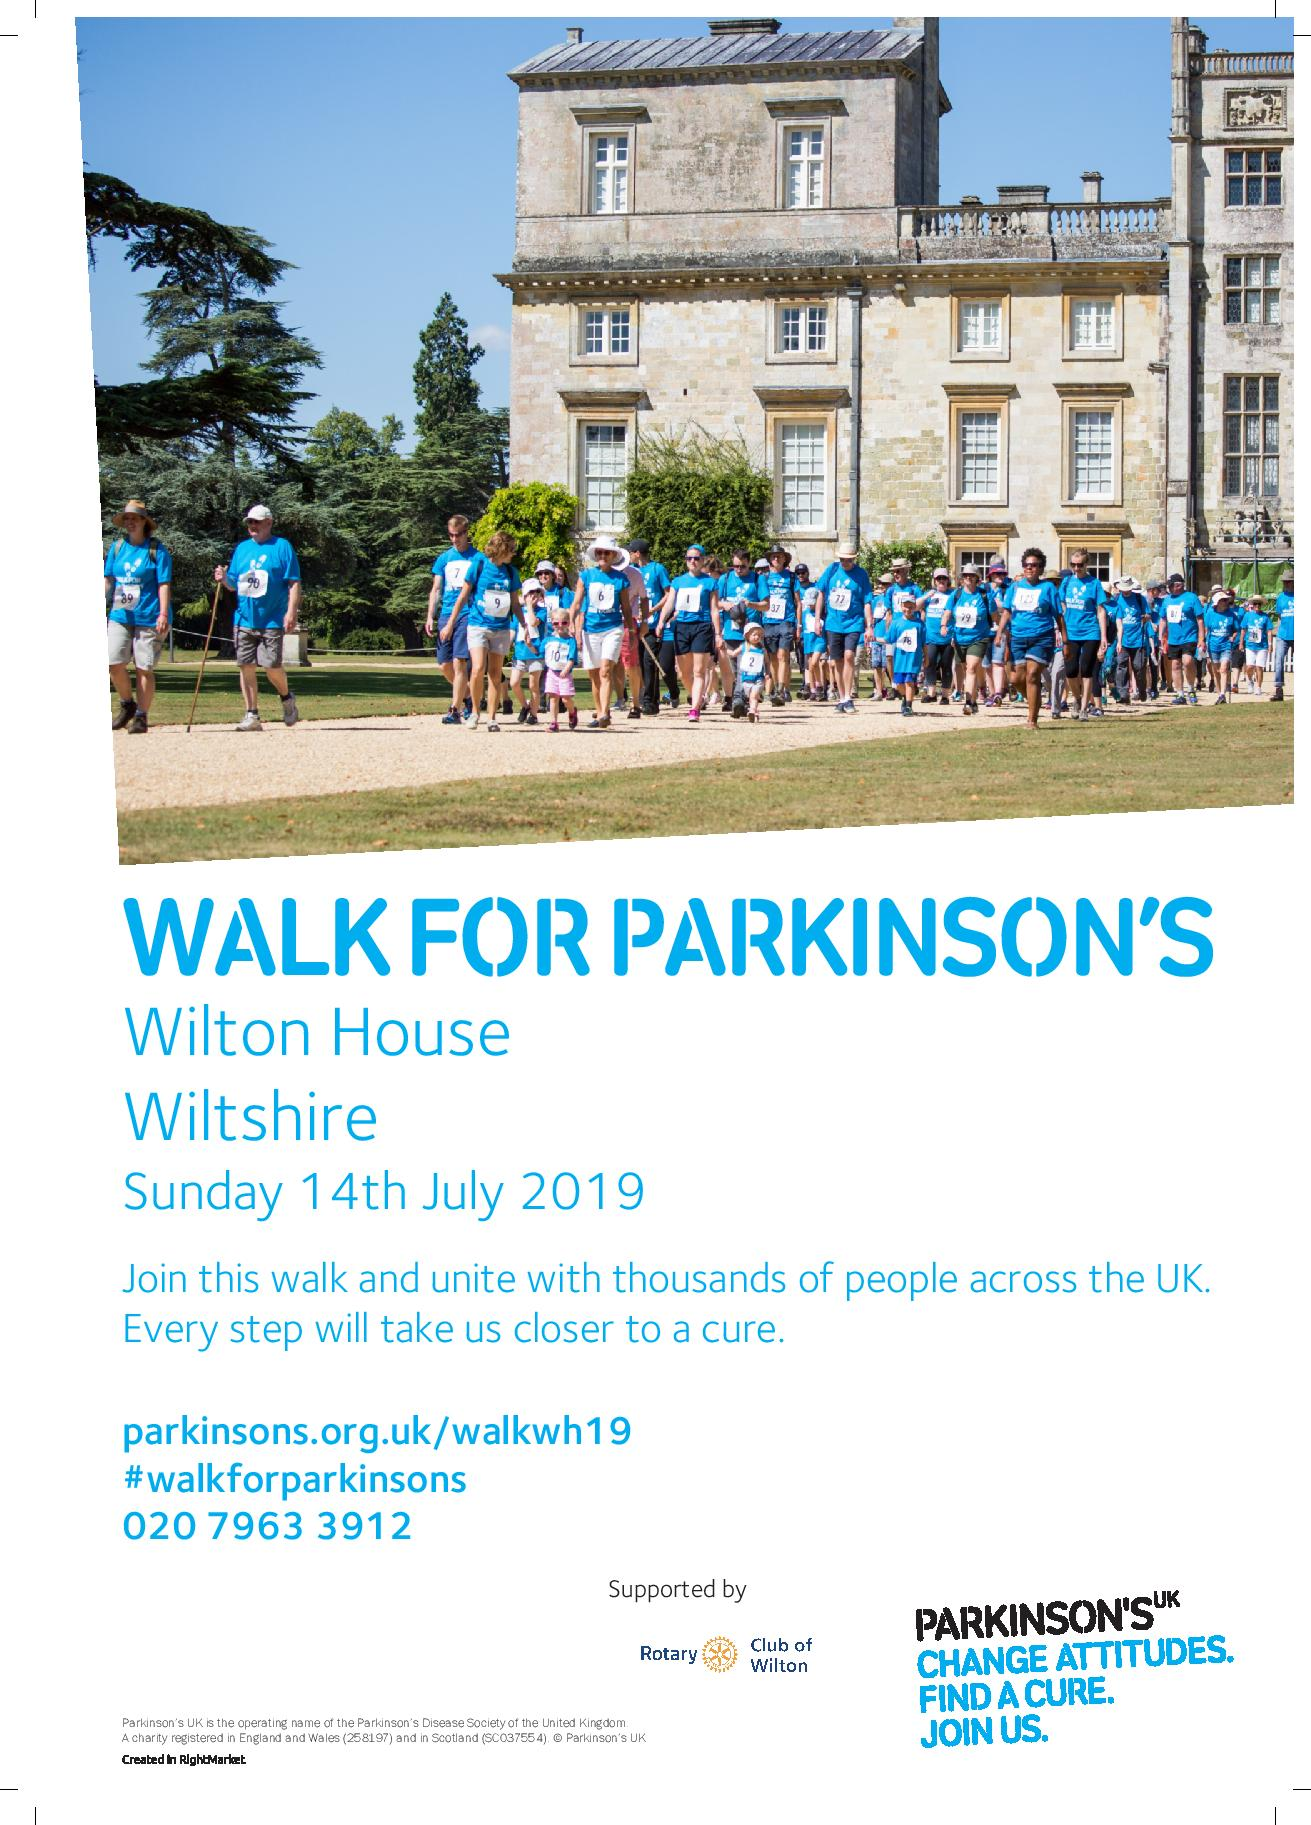 Walk for Parkinson's Wilton House